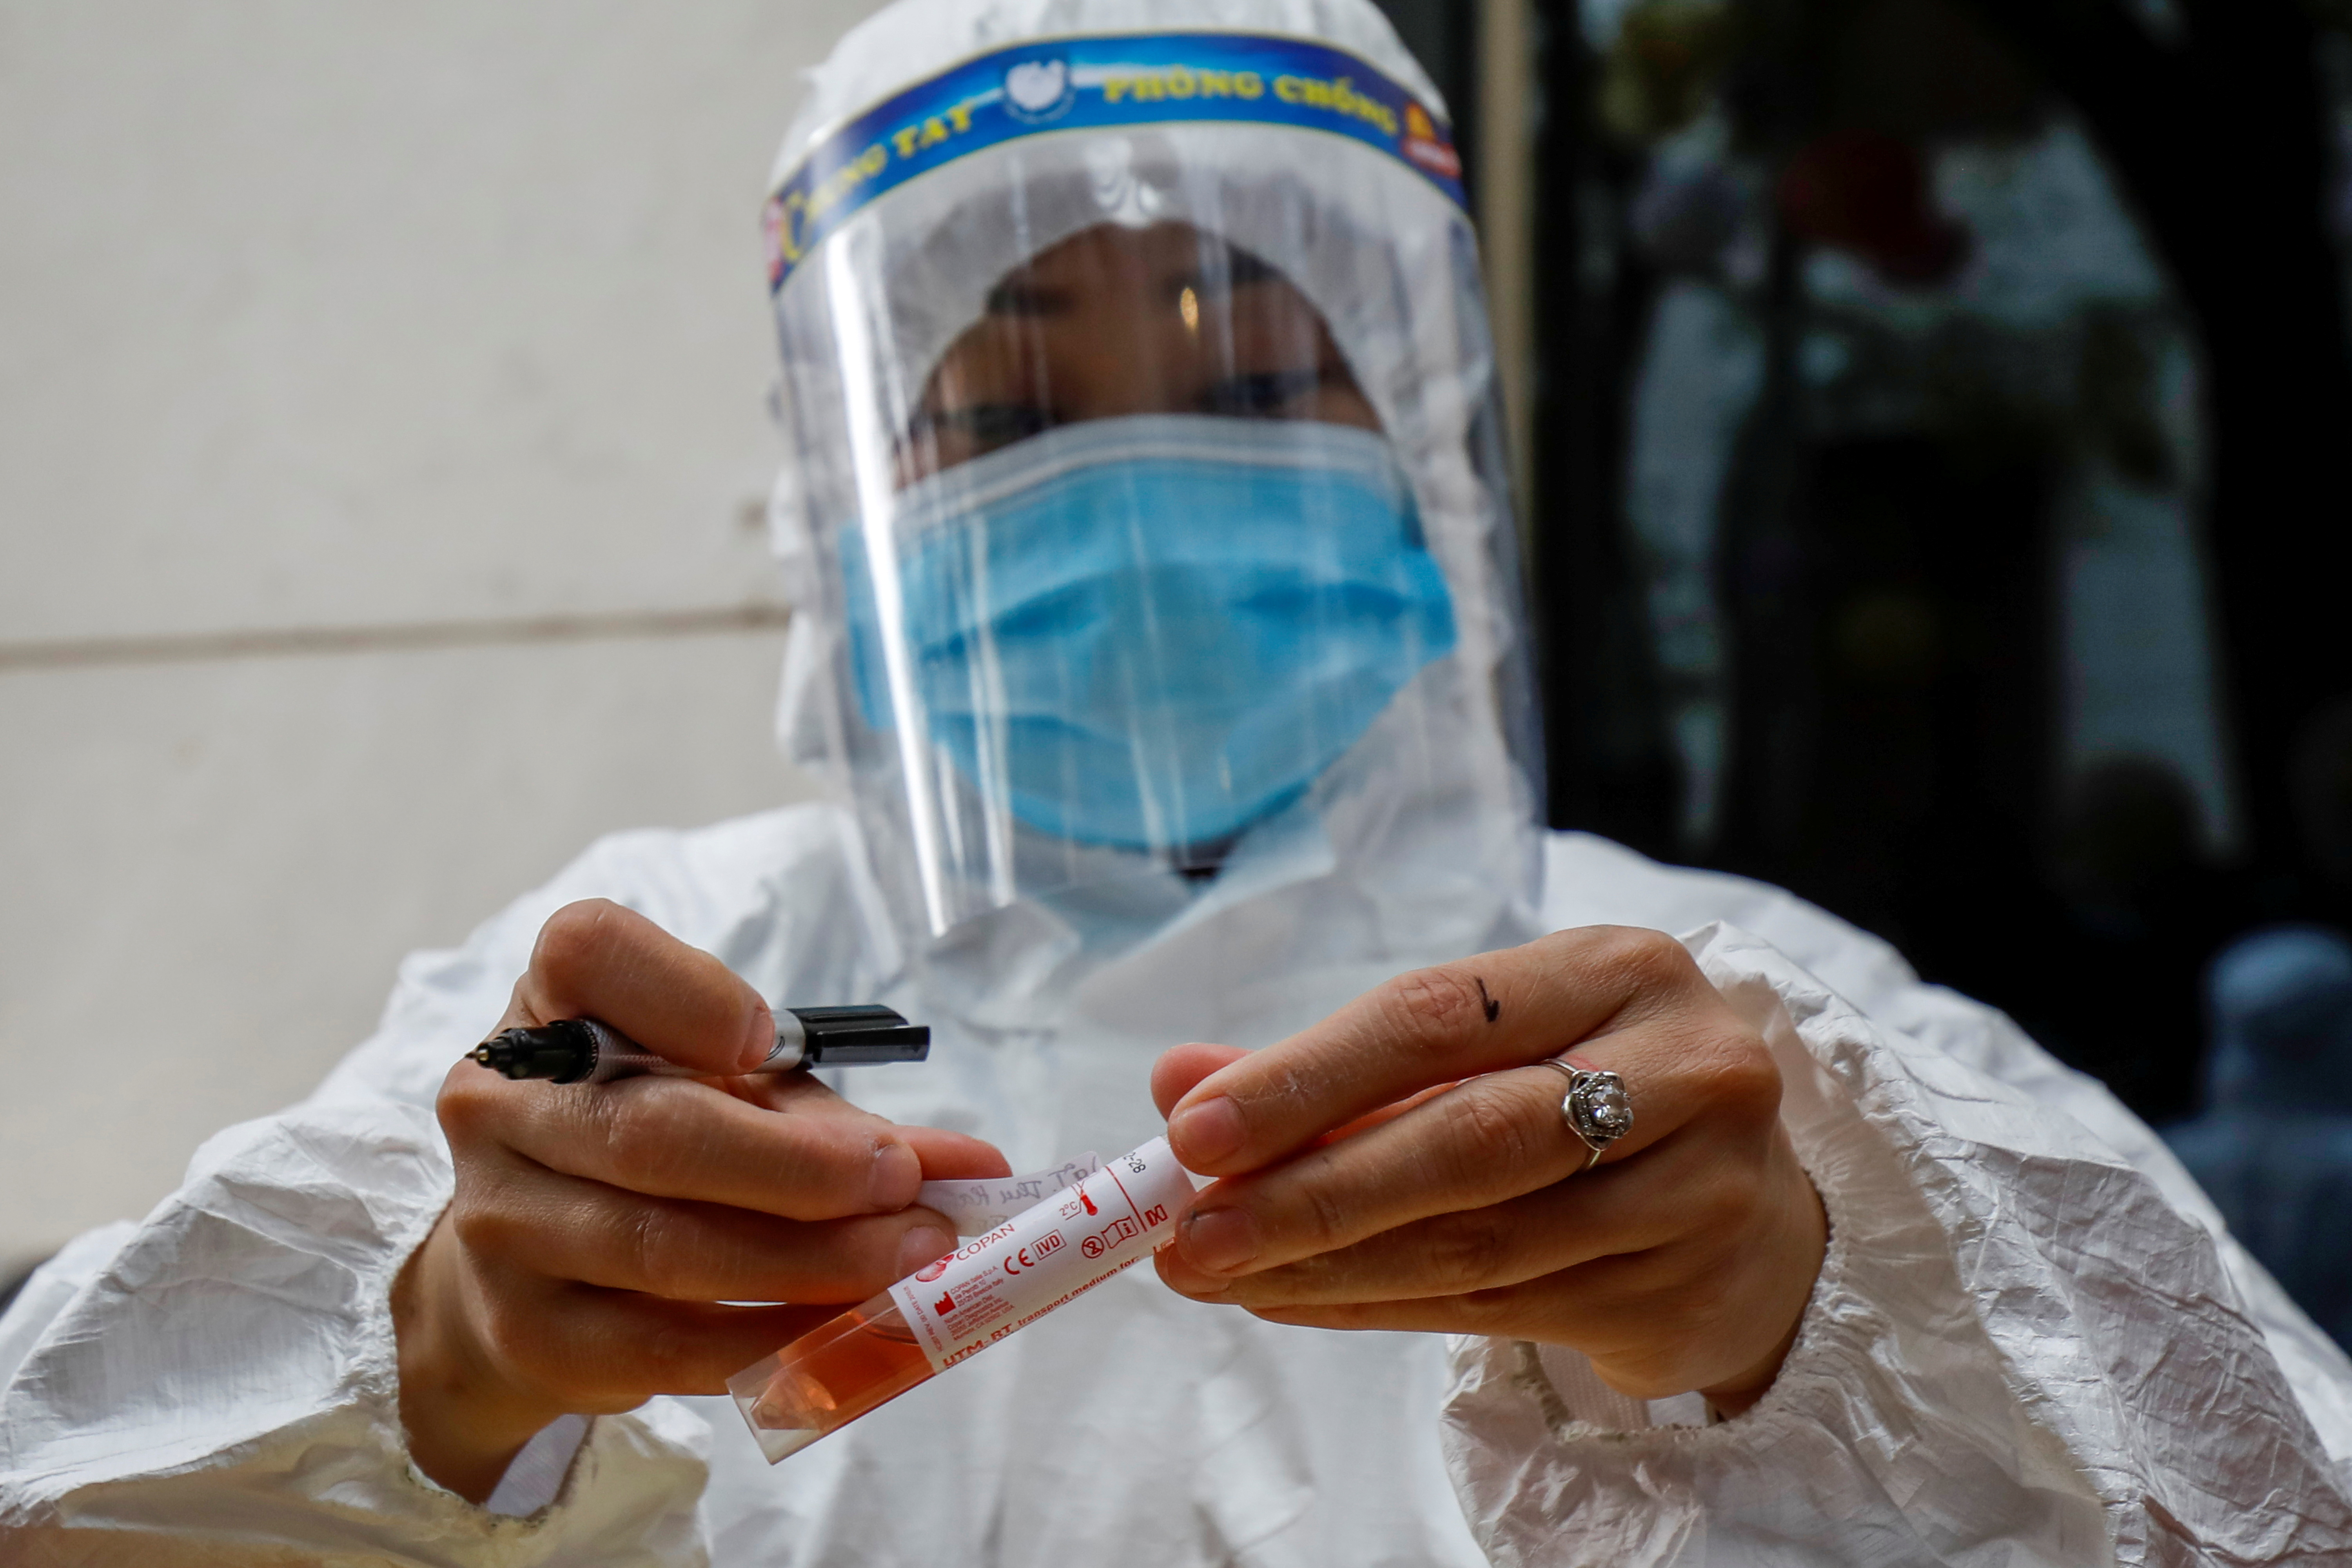 A health worker wearing a protective suit labels a sample tube at the National Convention Center, the venue for the 13th National Congress of the Communist Party of Vietnam, during the coronavirus disease (COVID-19) outbreak in Hanoi, Vietnam January 29, 2021. REUTERS/Kham